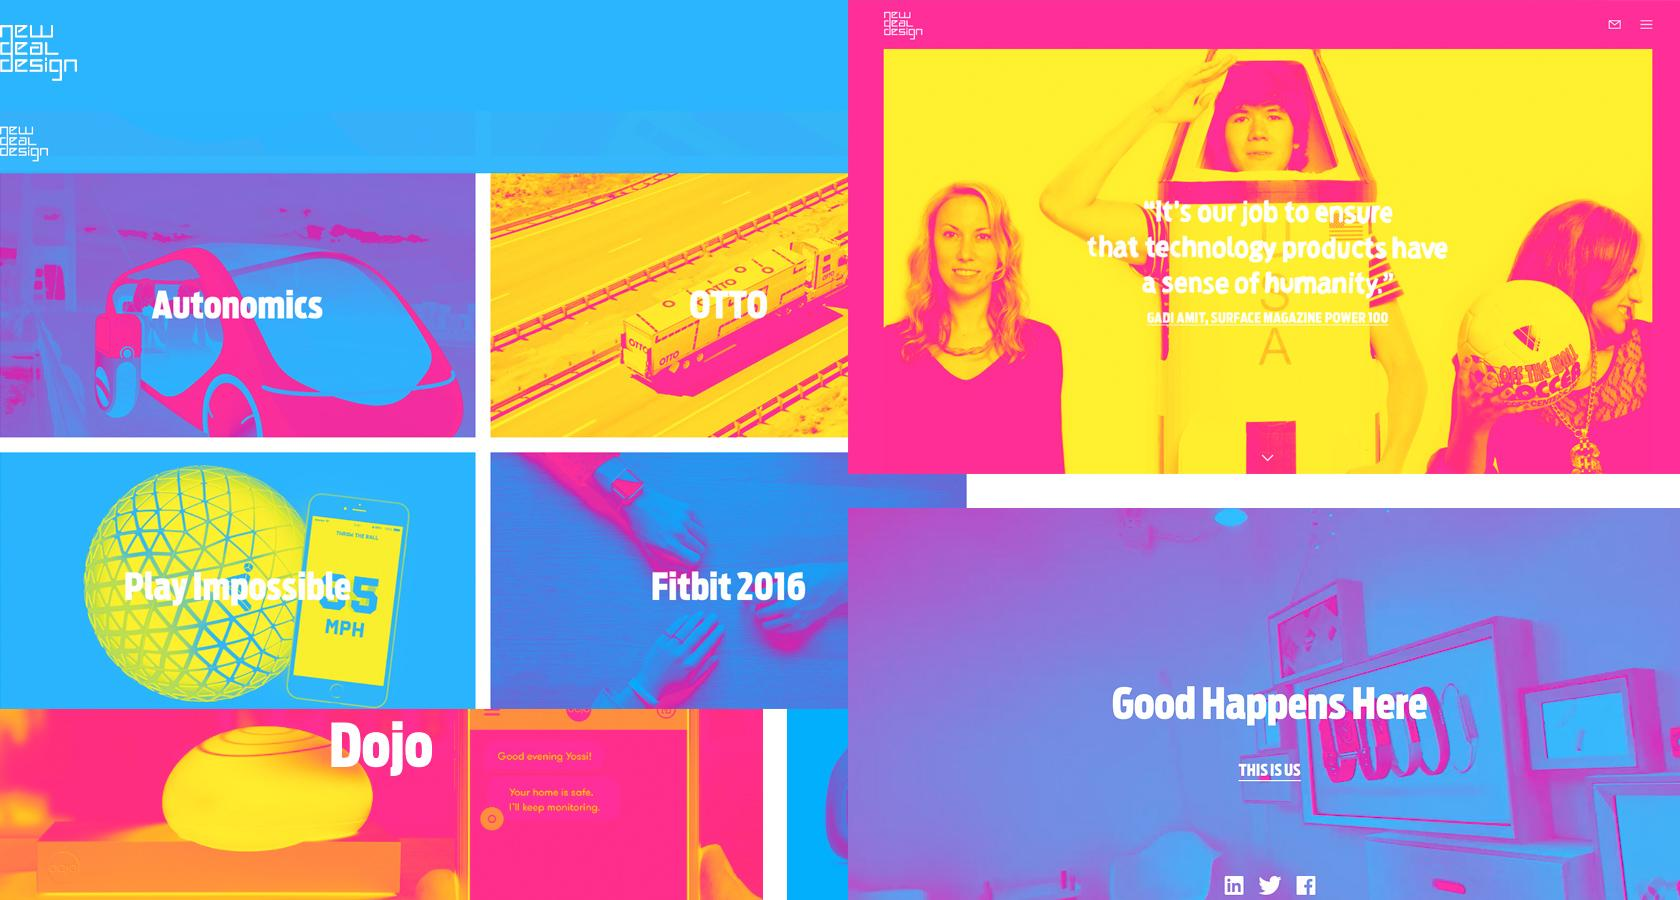 duotone fluorescent effect website design trend